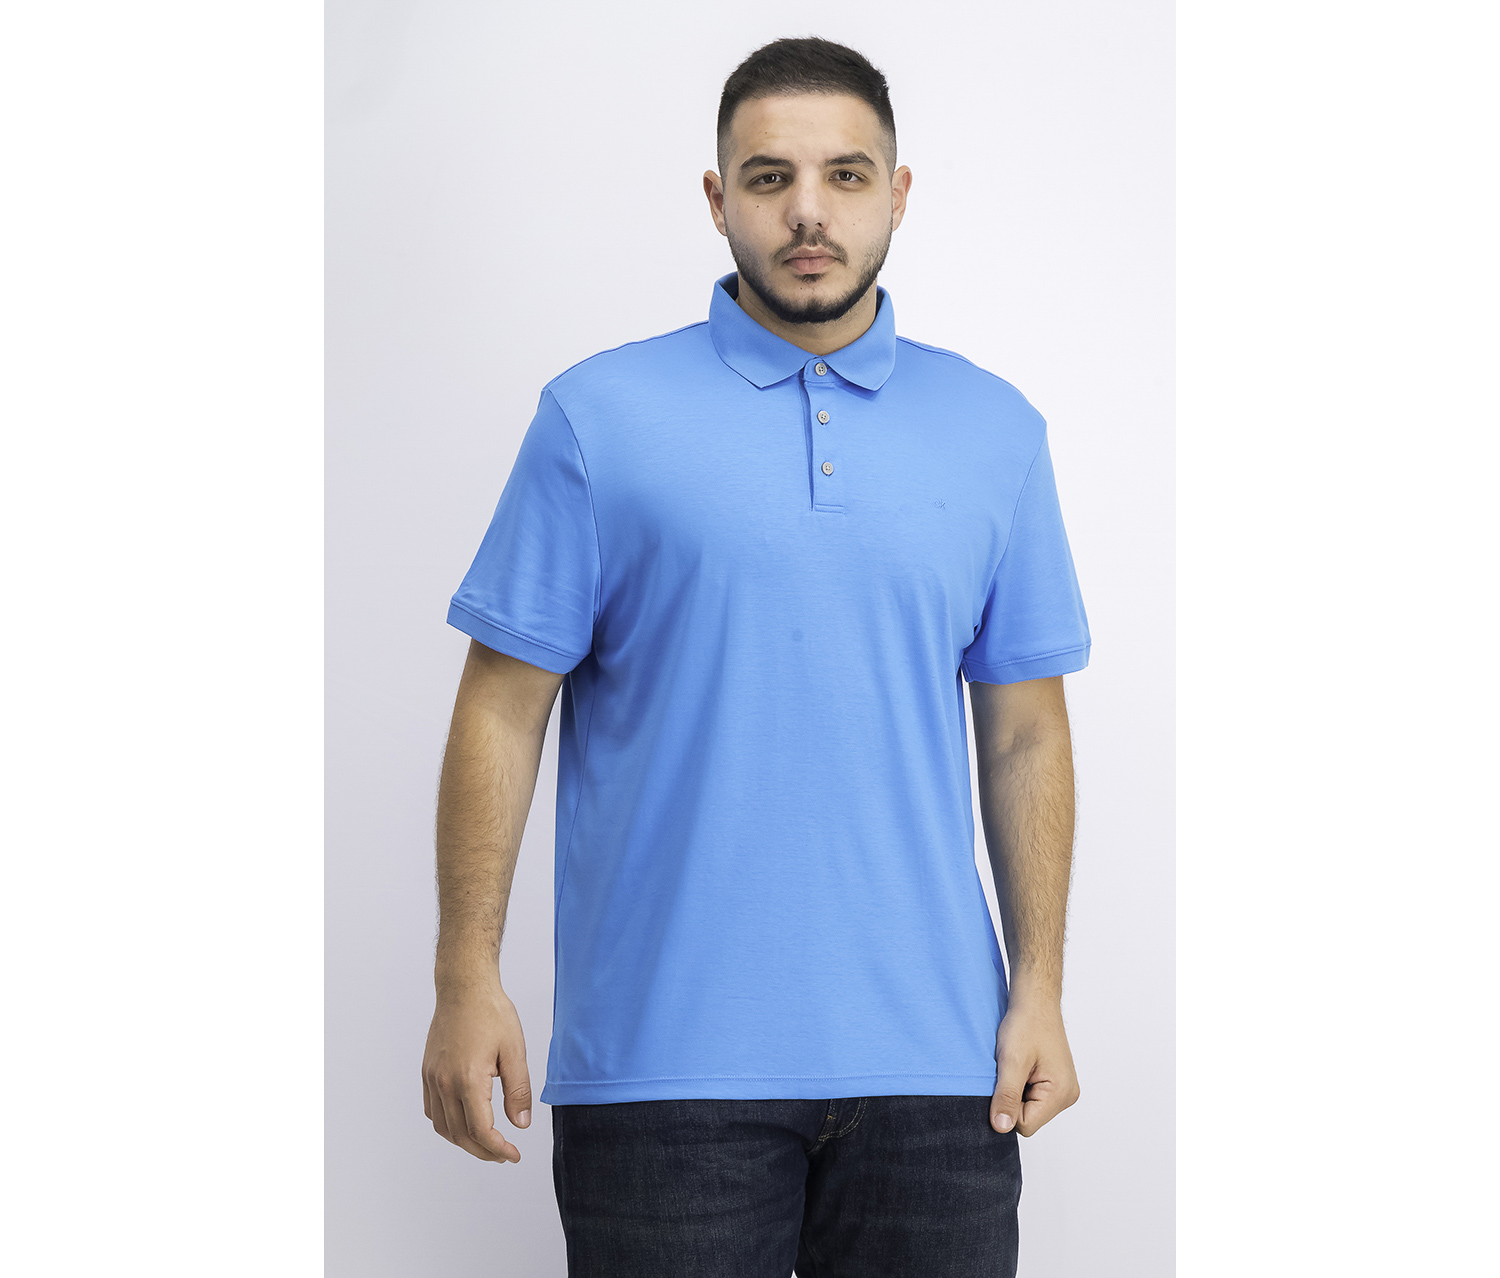 Men's Liquid Touch Cotton Polo Shirt, Malibu Blue